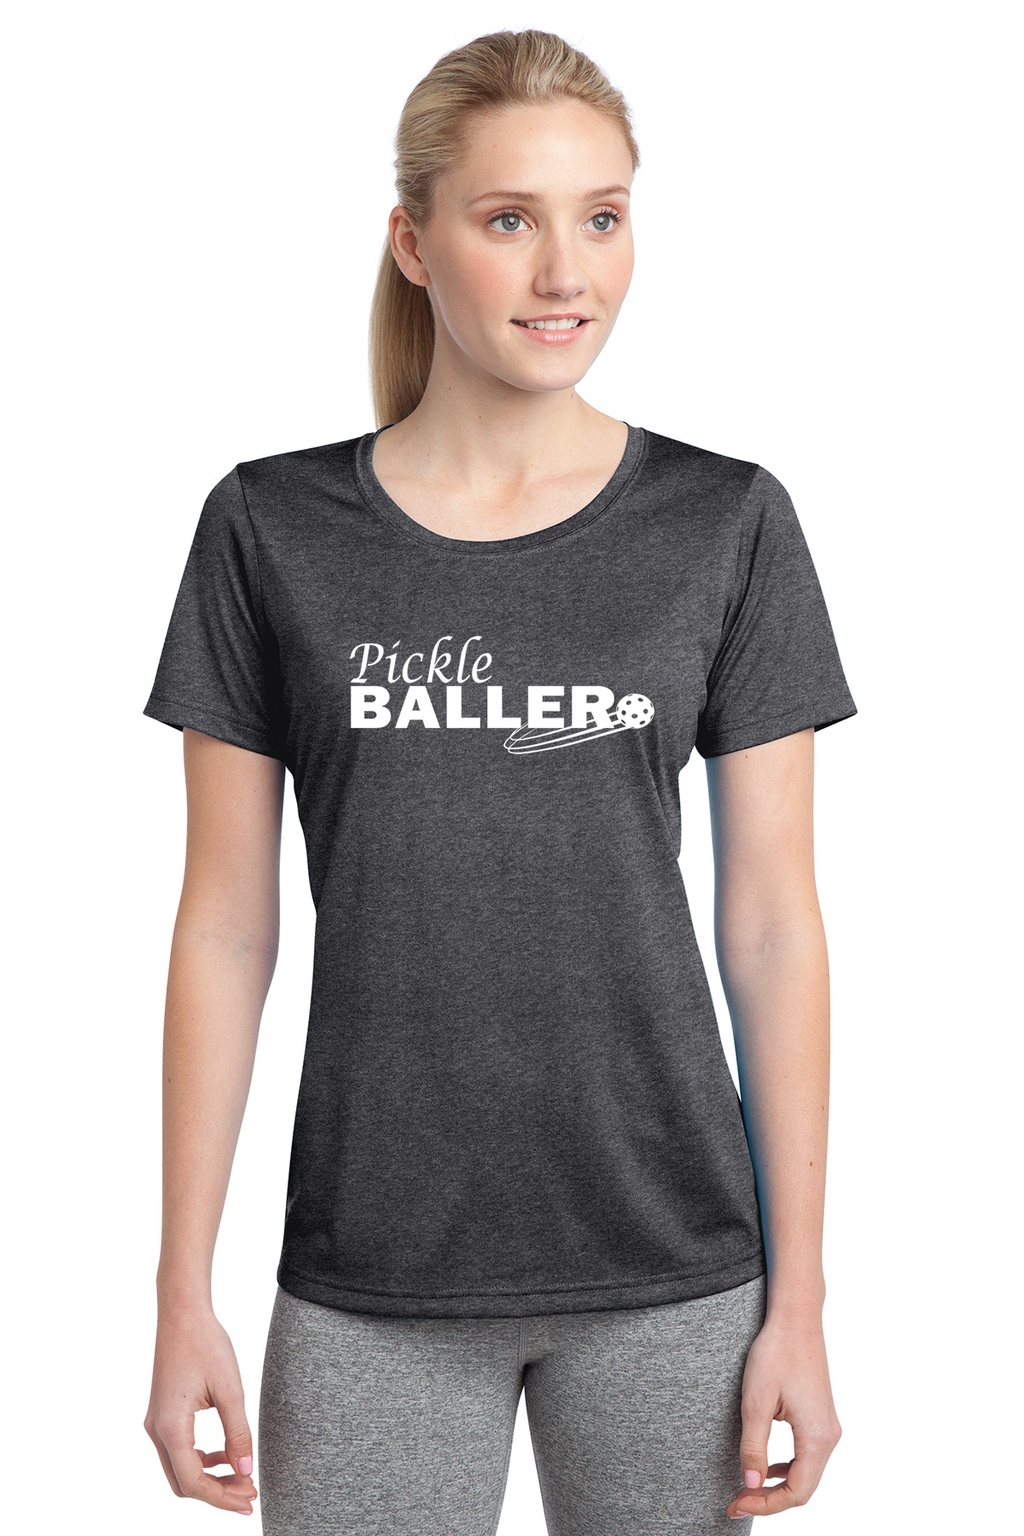 Ladies Heathered Short Sleeve Performance Scoop Neck Tee 'Pickleballer'